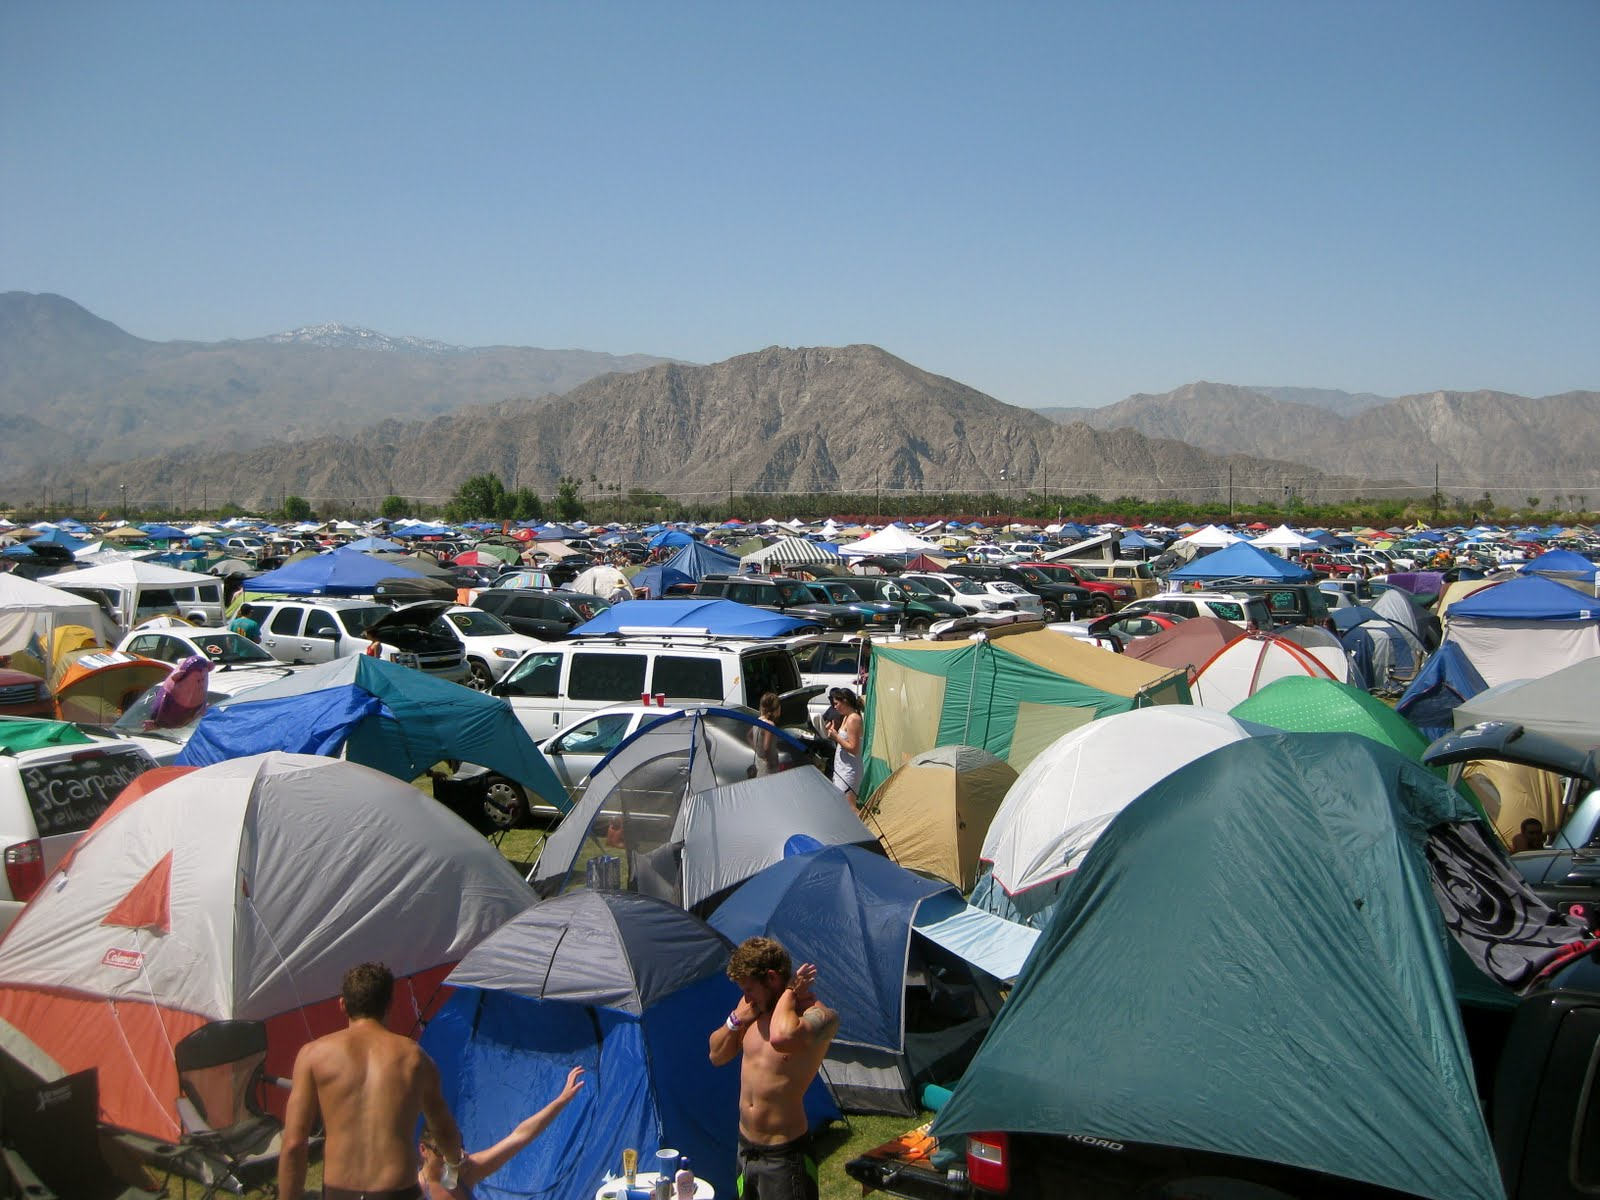 CURRY TIME: COACHELLA COUNT DOWN- Camping needs